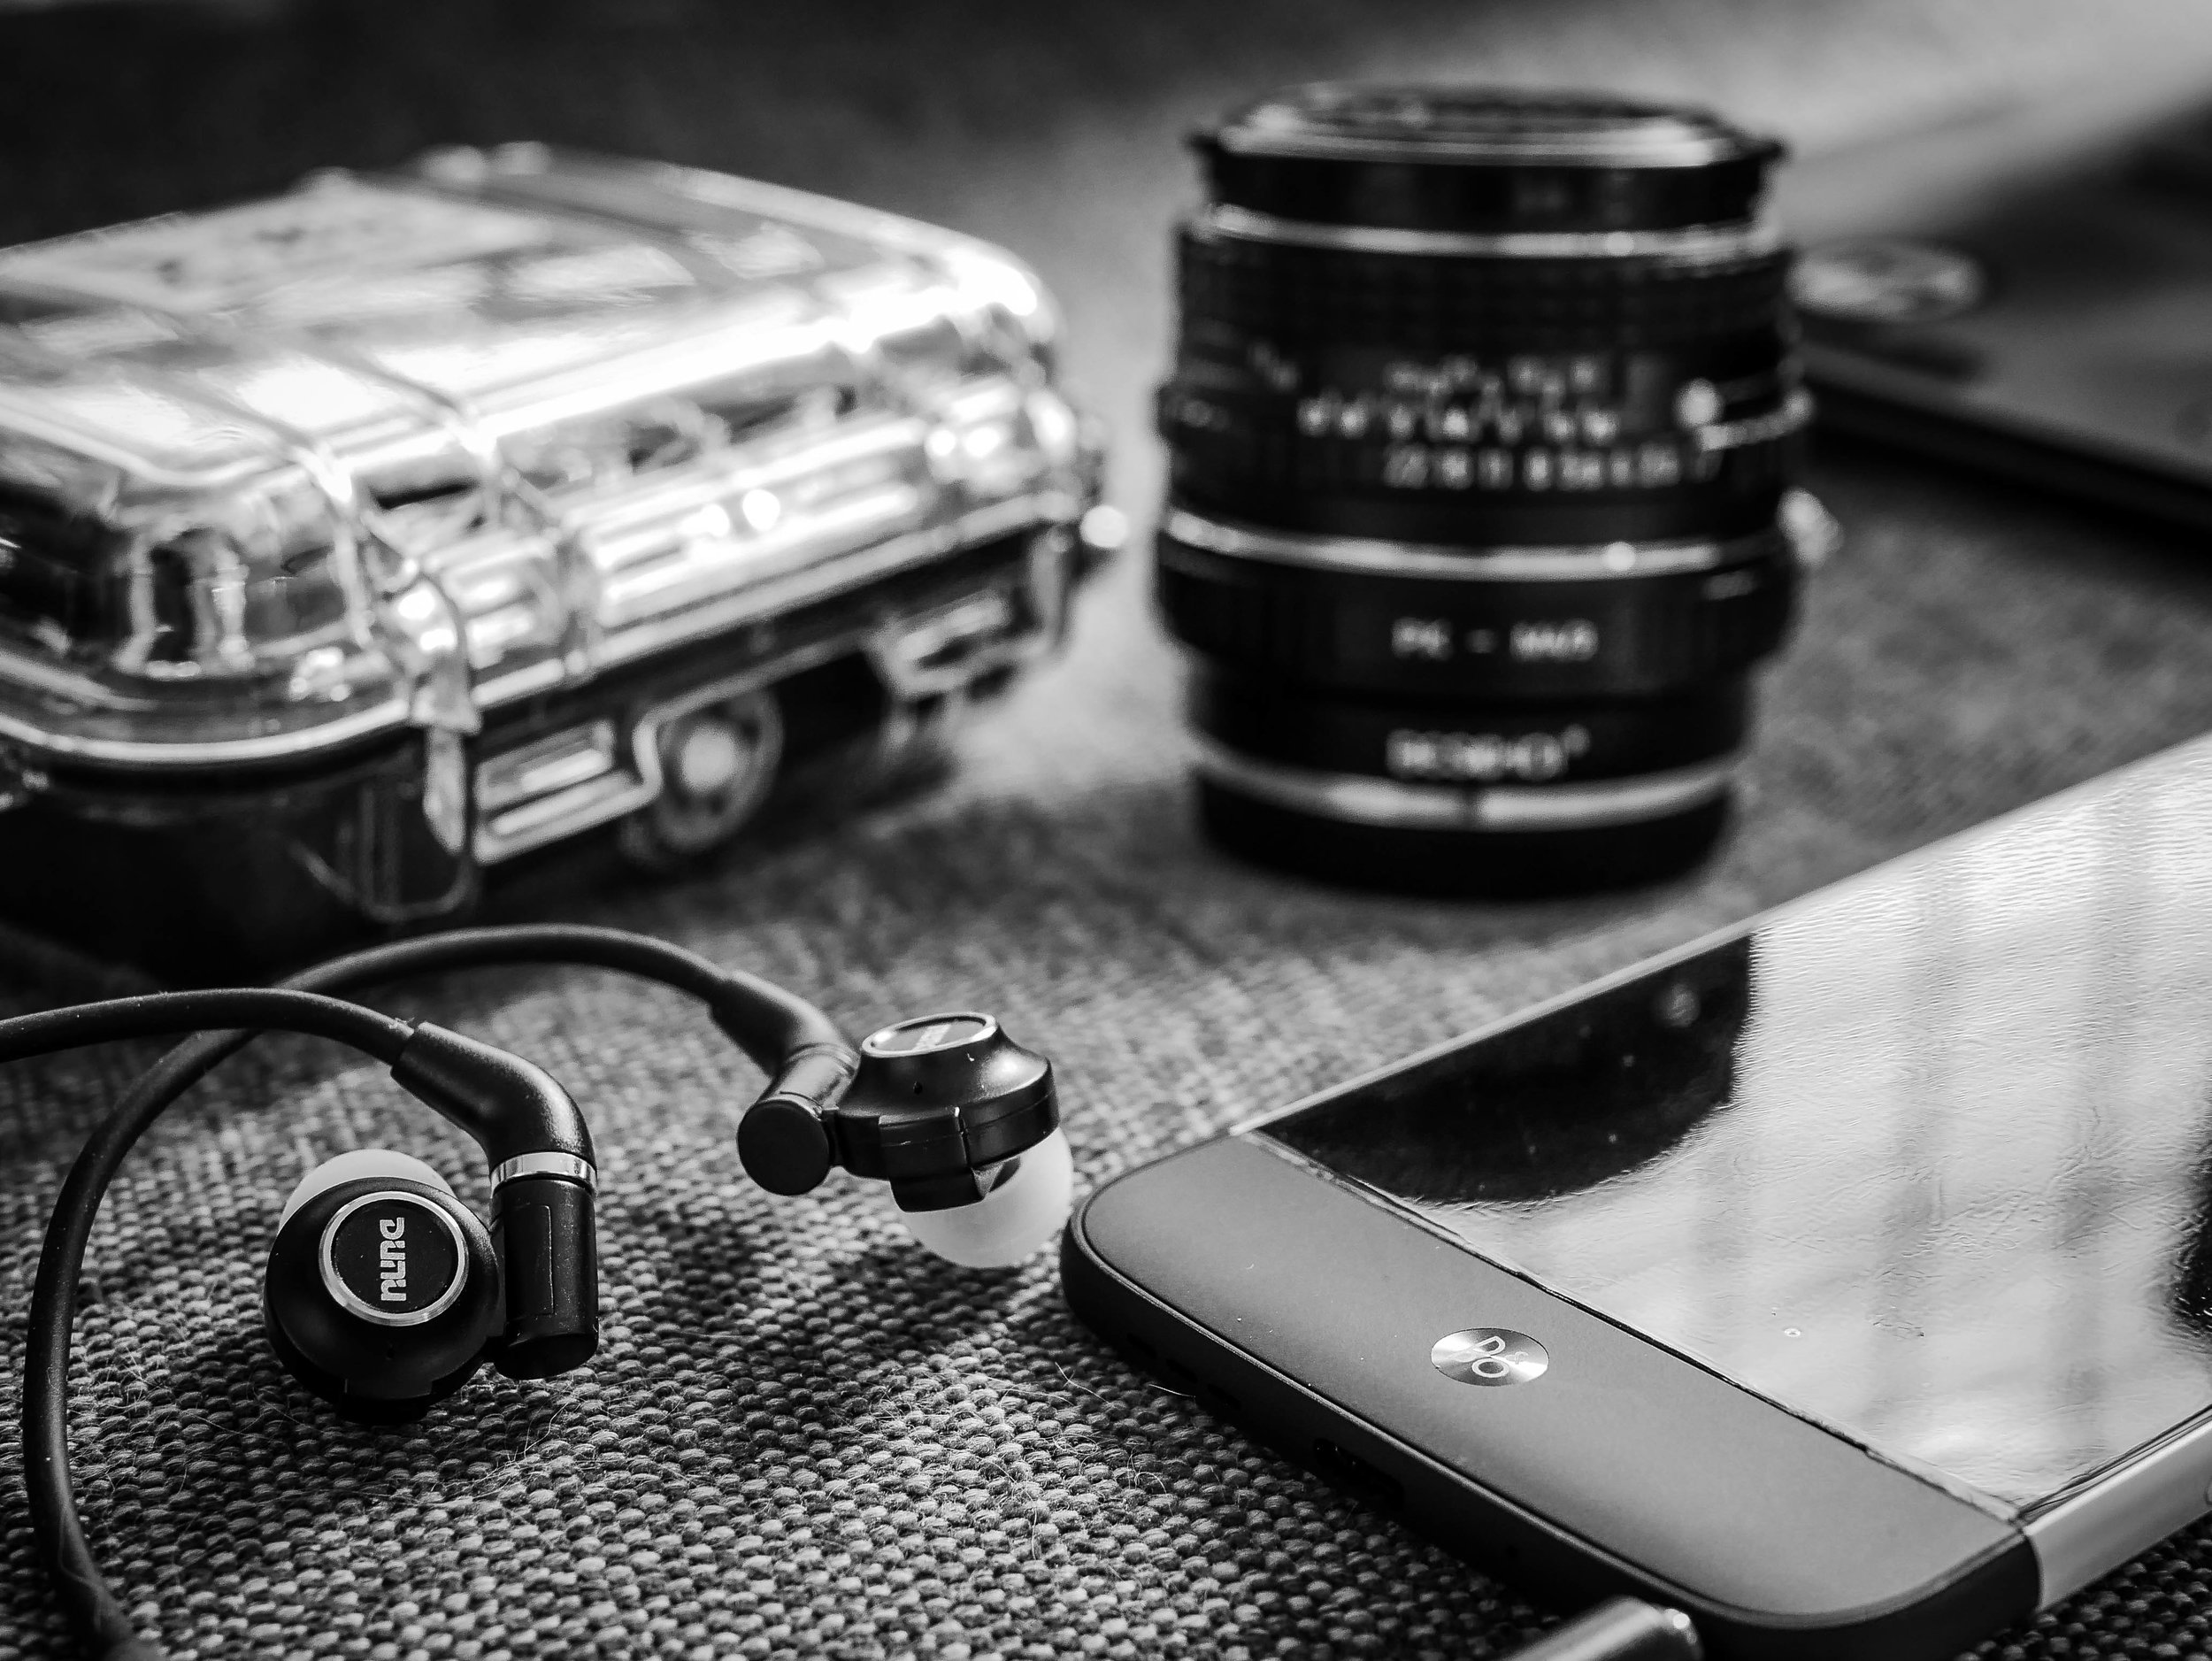 Picture of the Dunu Dk-3001 in-ear headphones with the LG G5 & Bang & Olufsen B&O Beoplay Hifi Plus